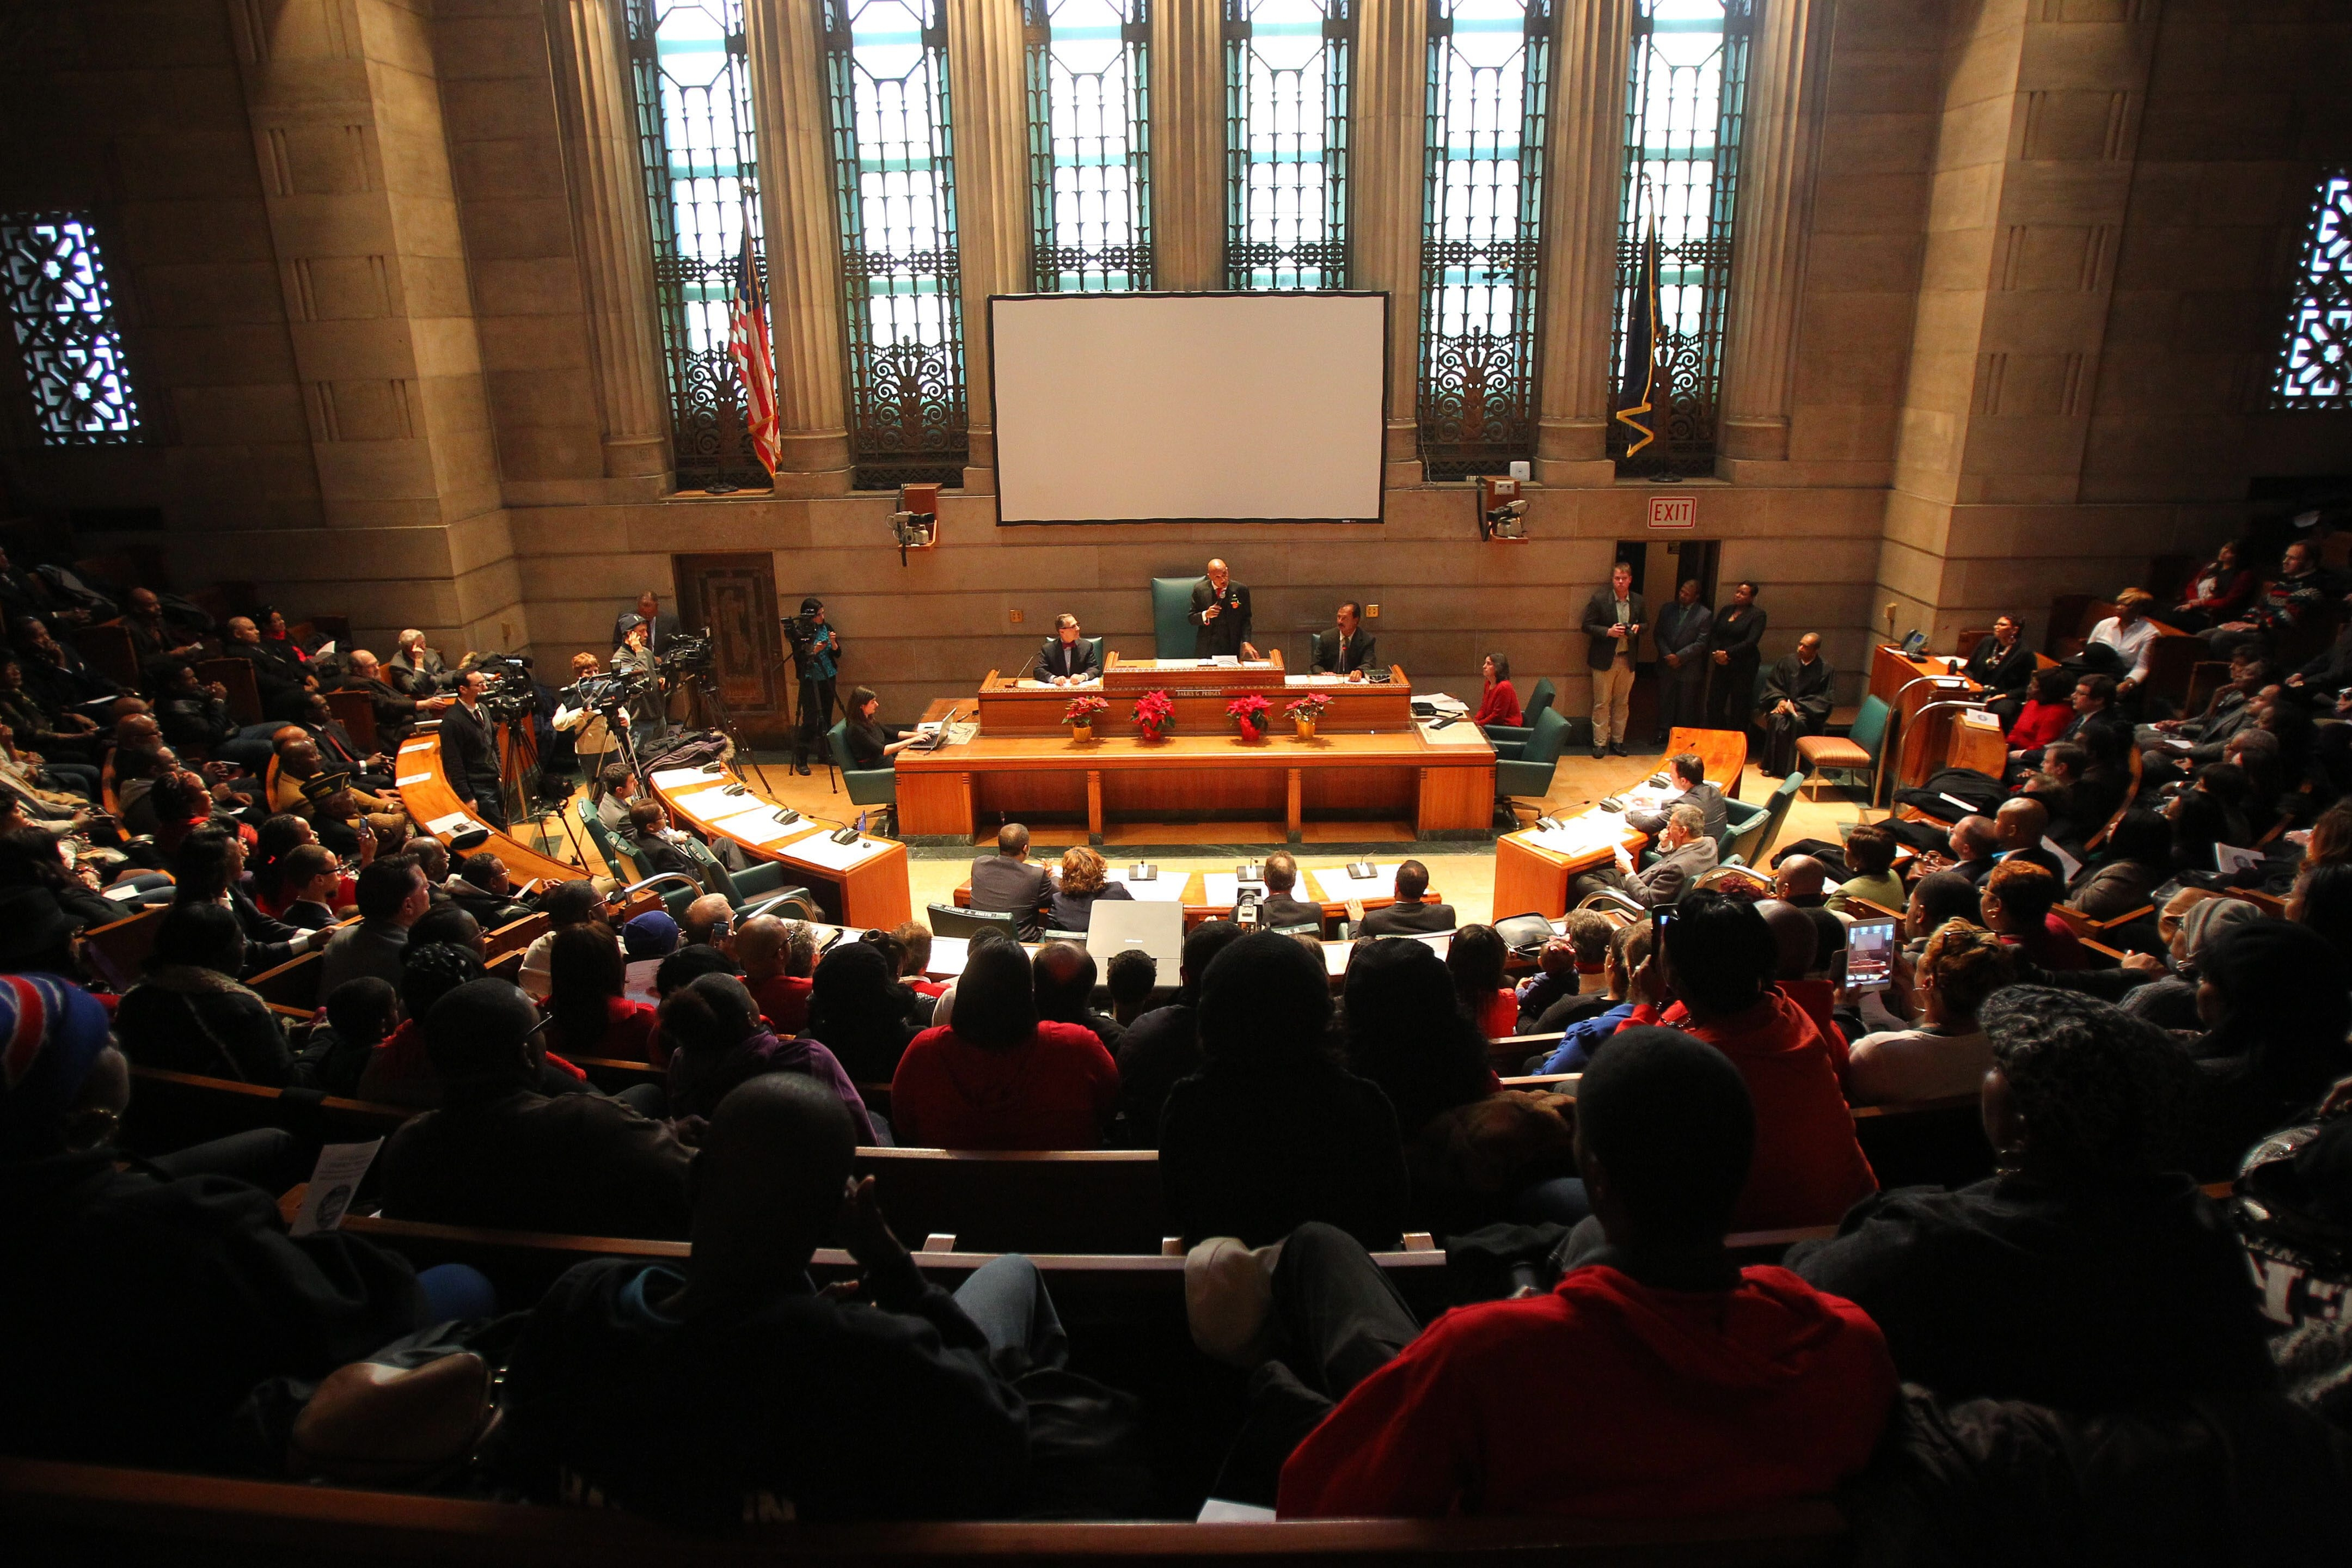 Rev. Darius G. Pridgen speaks to a packed Council Chambers after being sworn in as president of the Common Council on Thursday.